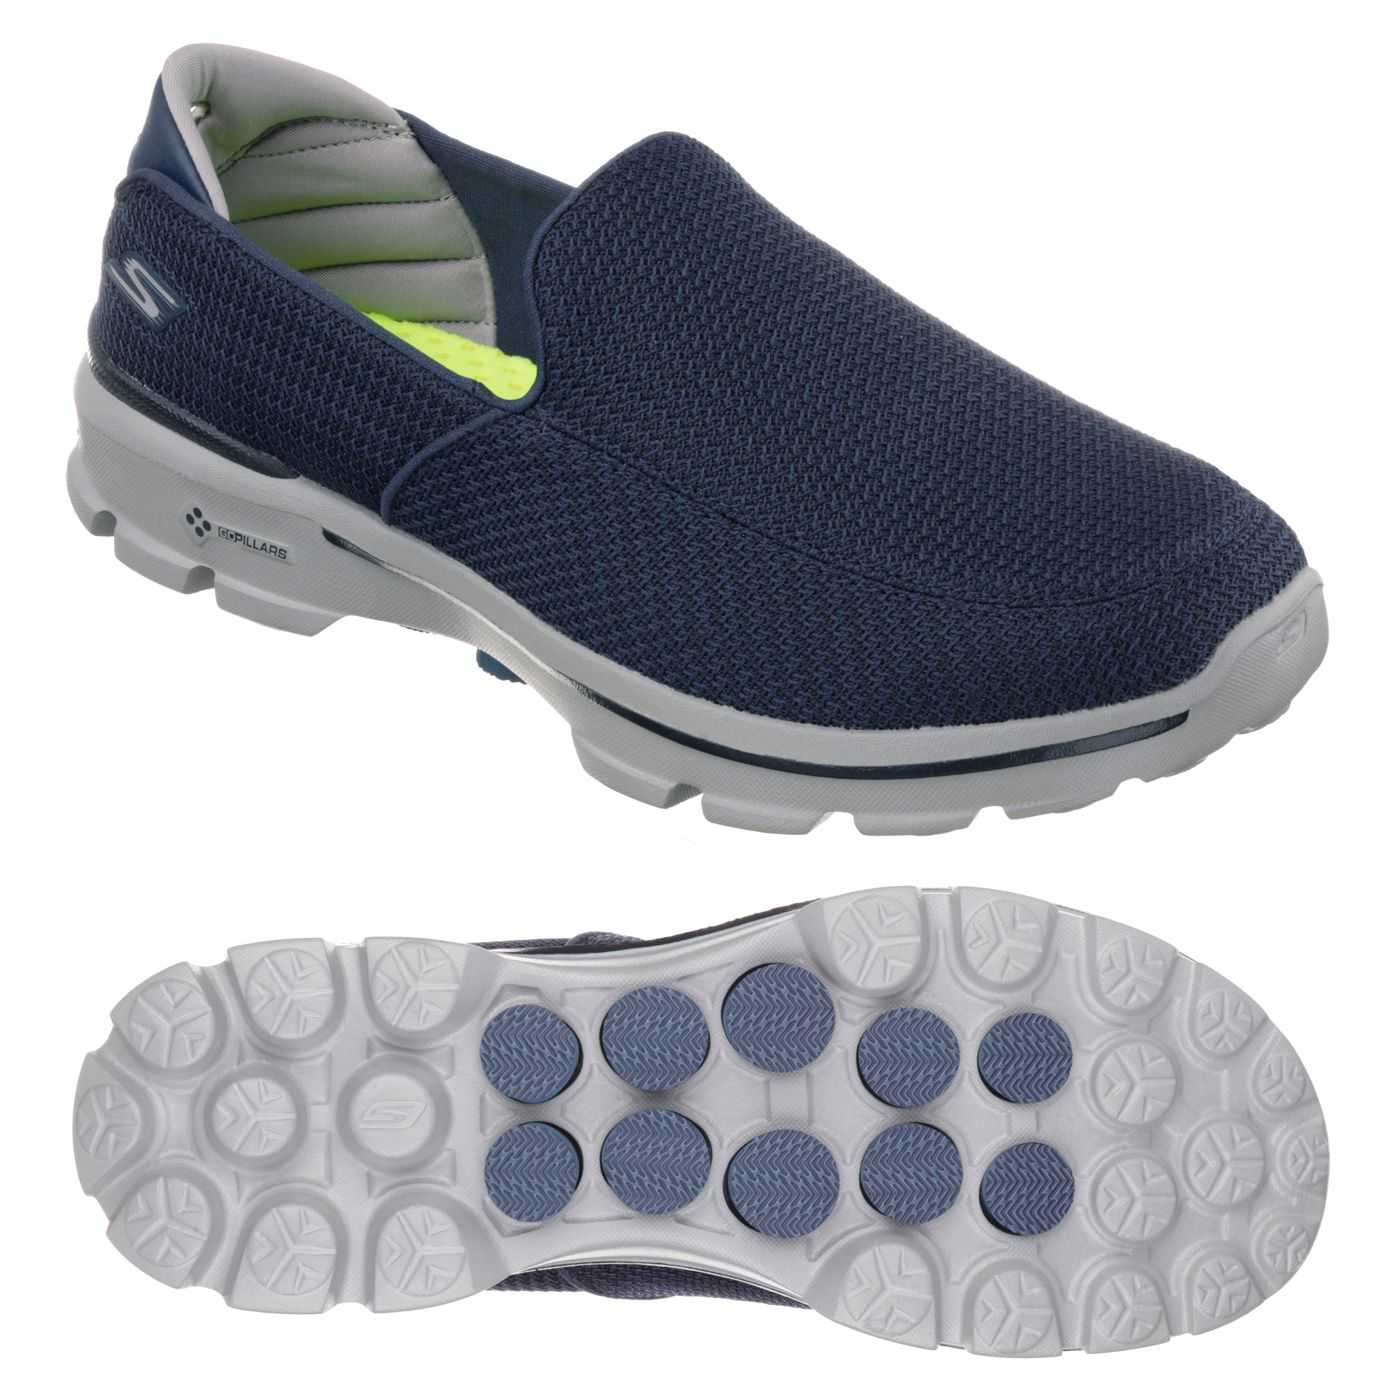 skechers go walk 3 mens walking shoes ss16